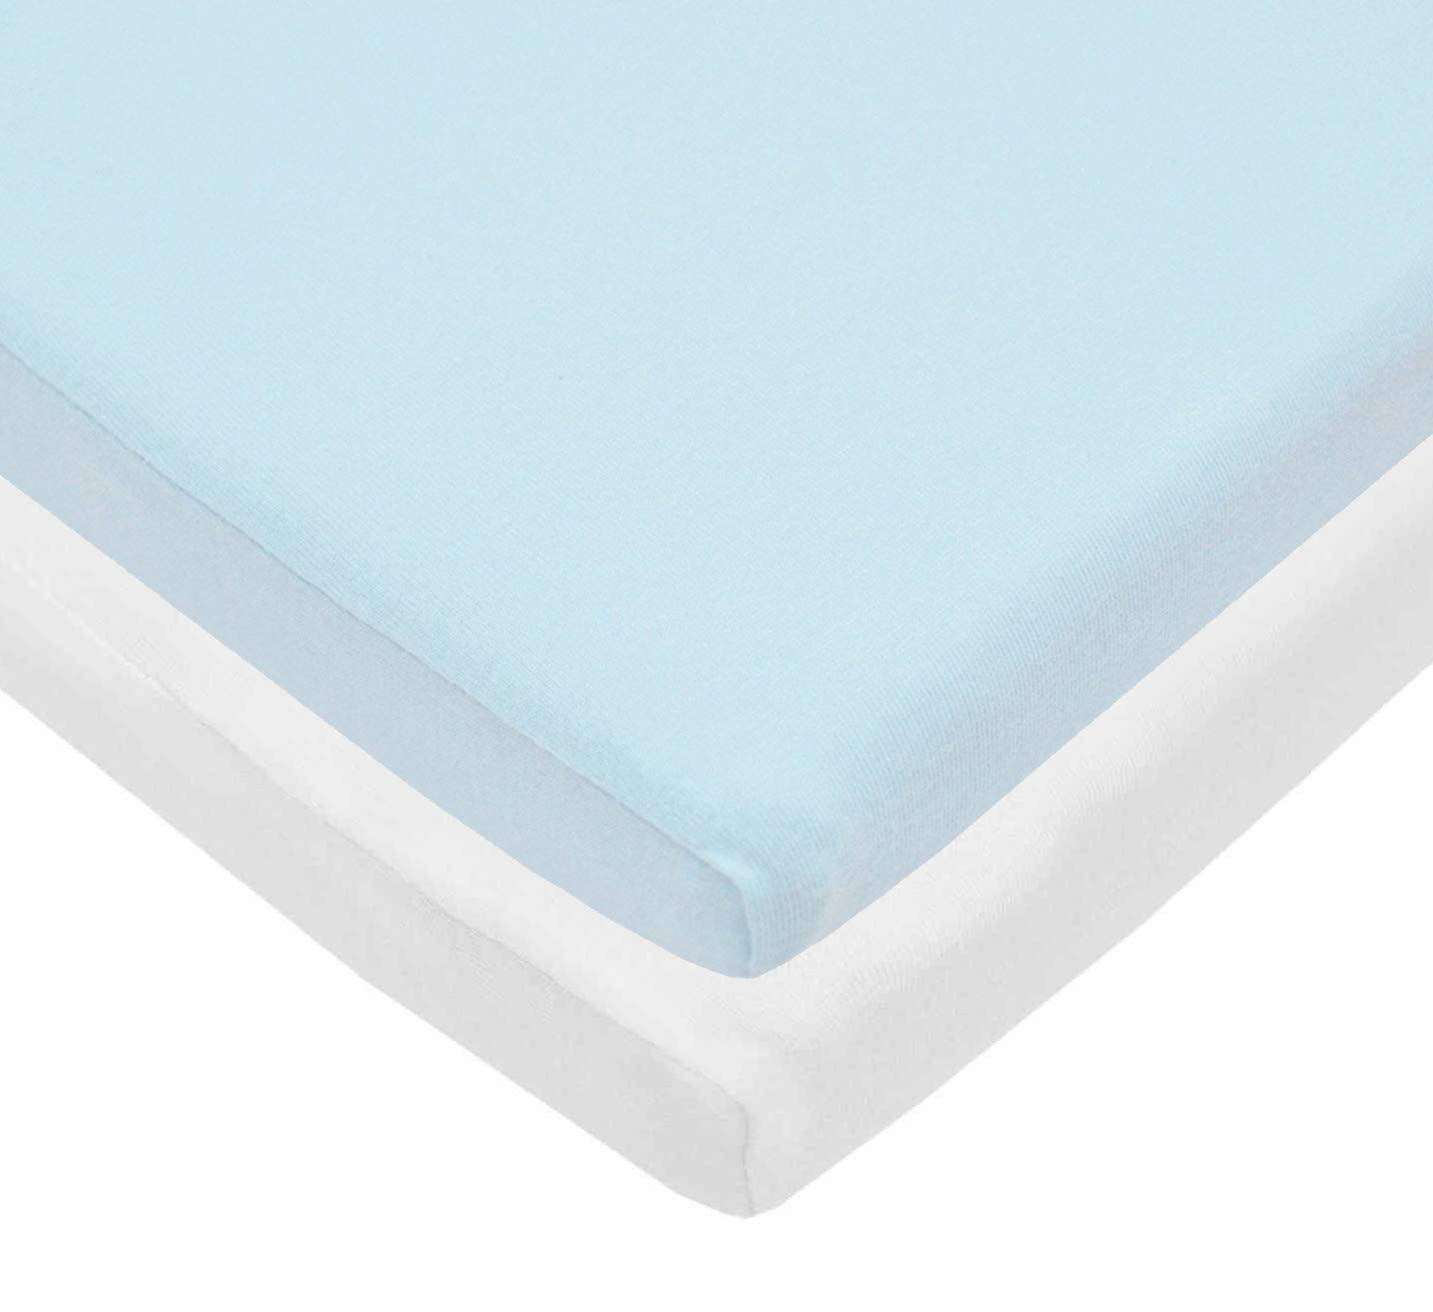 American Baby Company 2 Pack 100% Cotton Value Jersey Knit Cradle Sheet - Blue/White